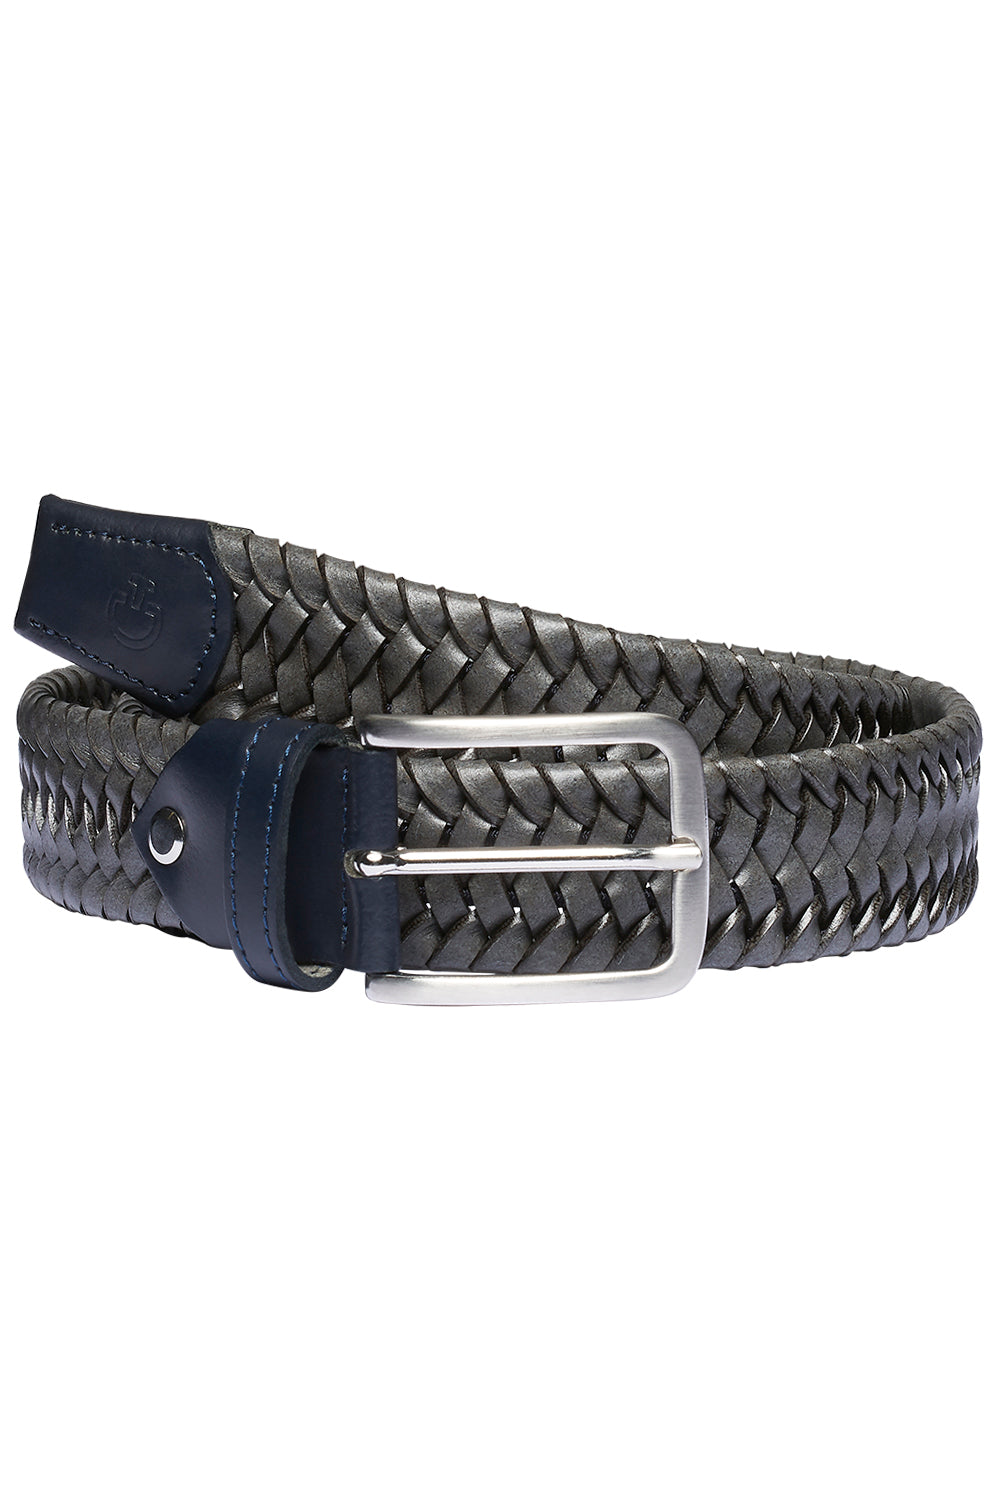 Cavalleria Toscana Elastic Leather Belt w/ contrast Rayon Stripes